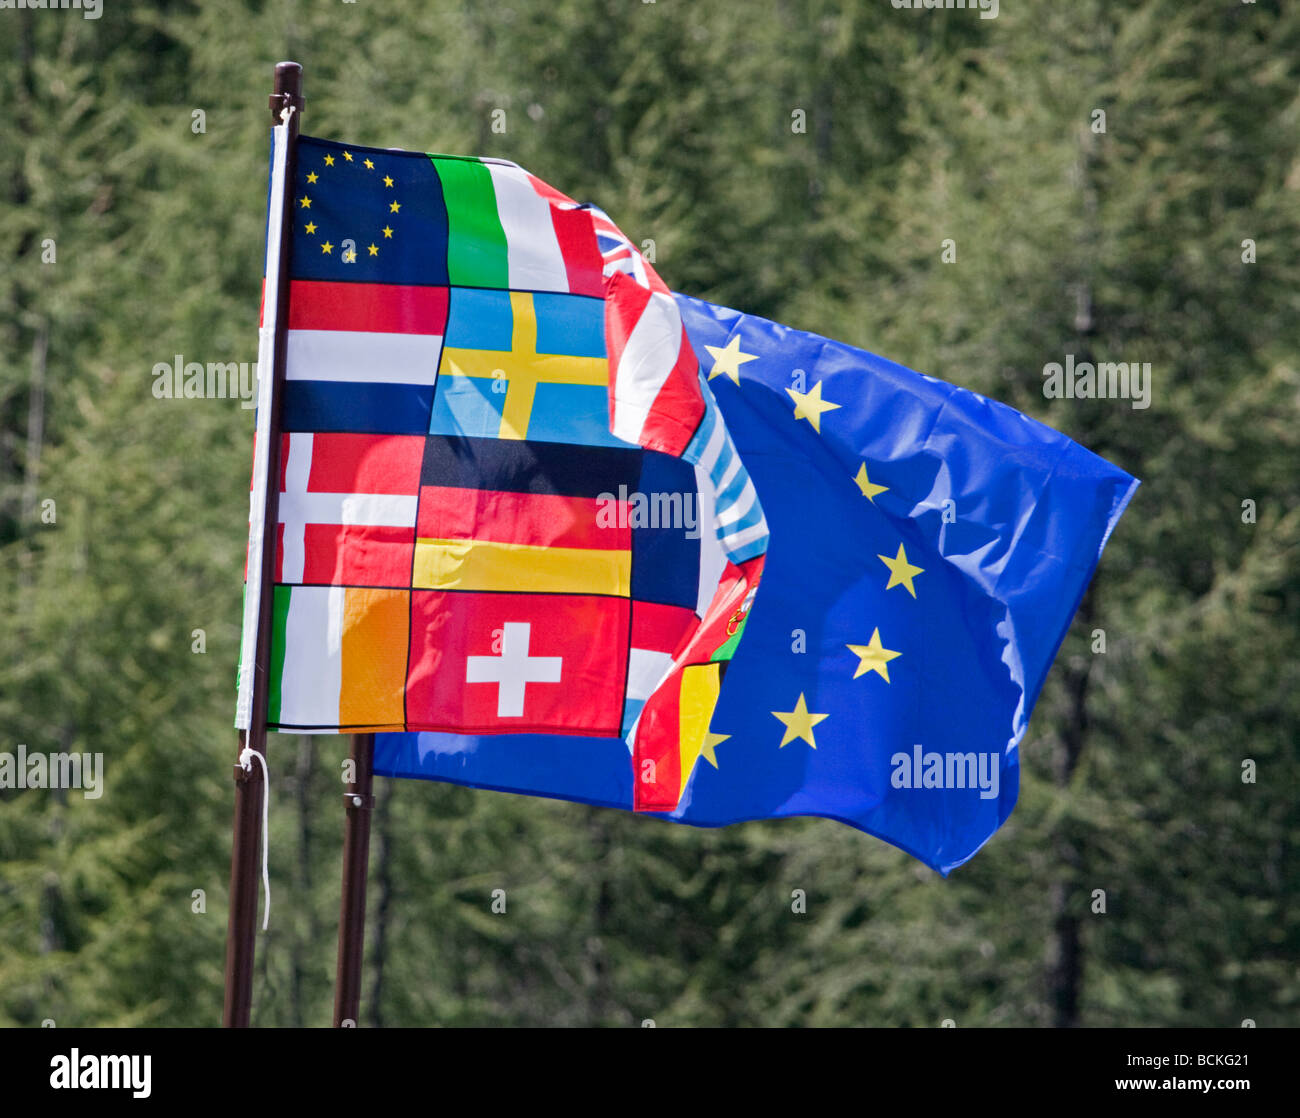 Two European Union Flags showing National Flags and Stars, Italy - Stock Image